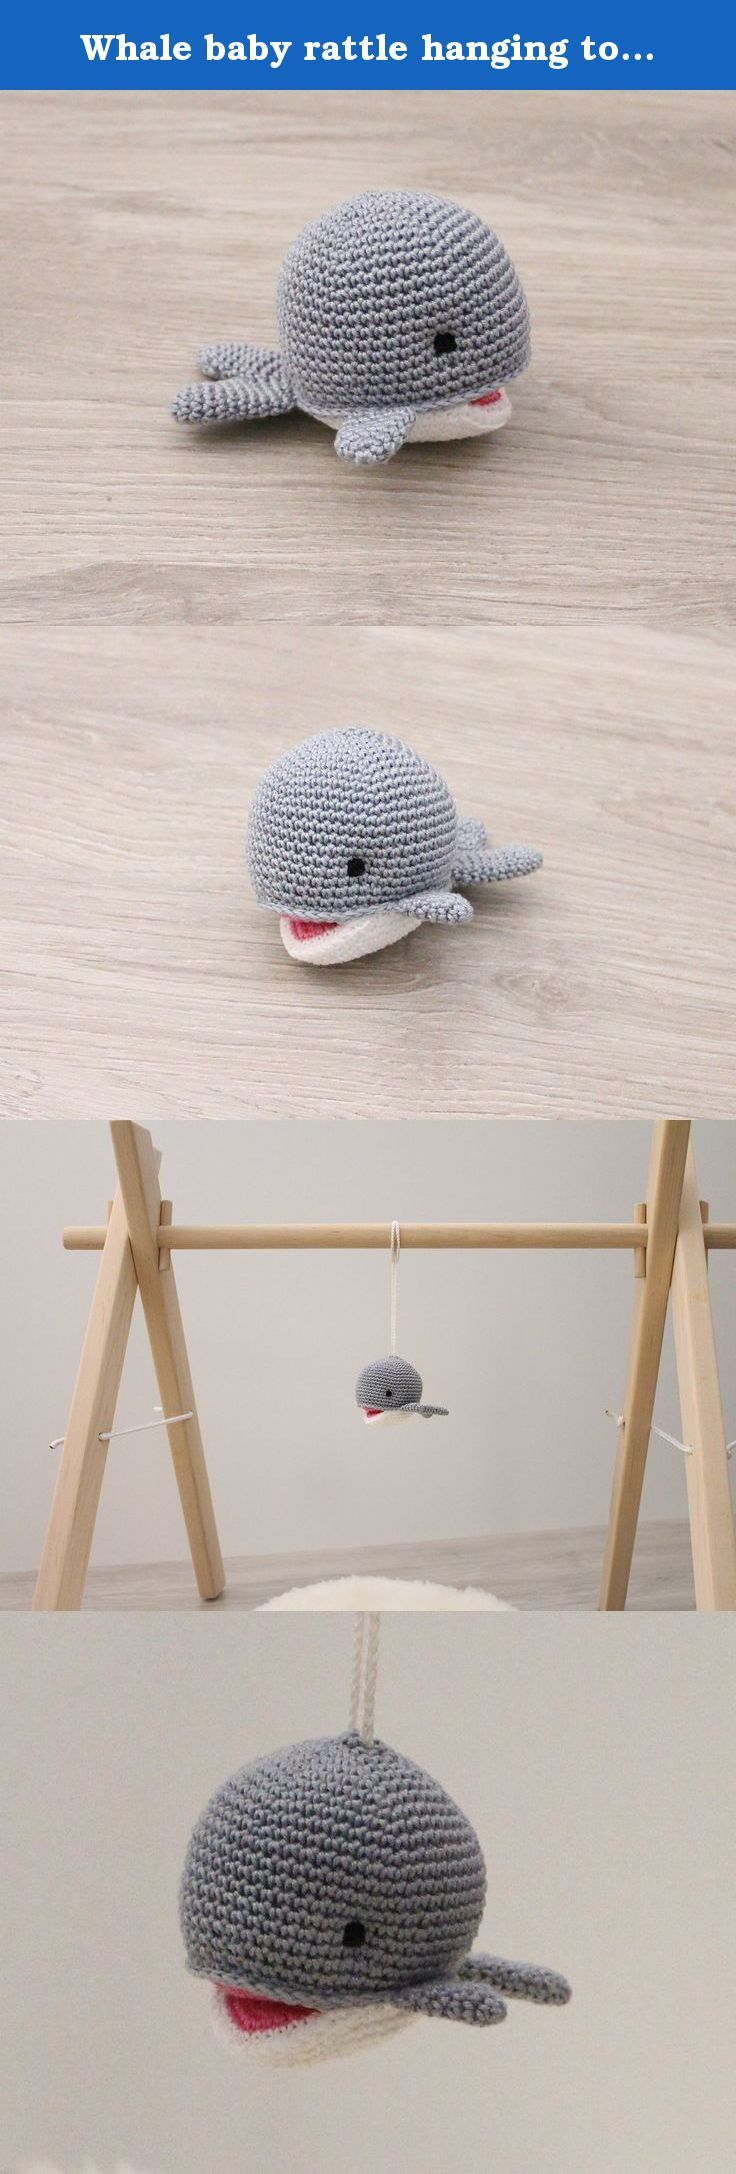 Best crib toys your baby - Whale Baby Rattle Hanging Toy Baby Gym Toy Crib Toy Shower Gift